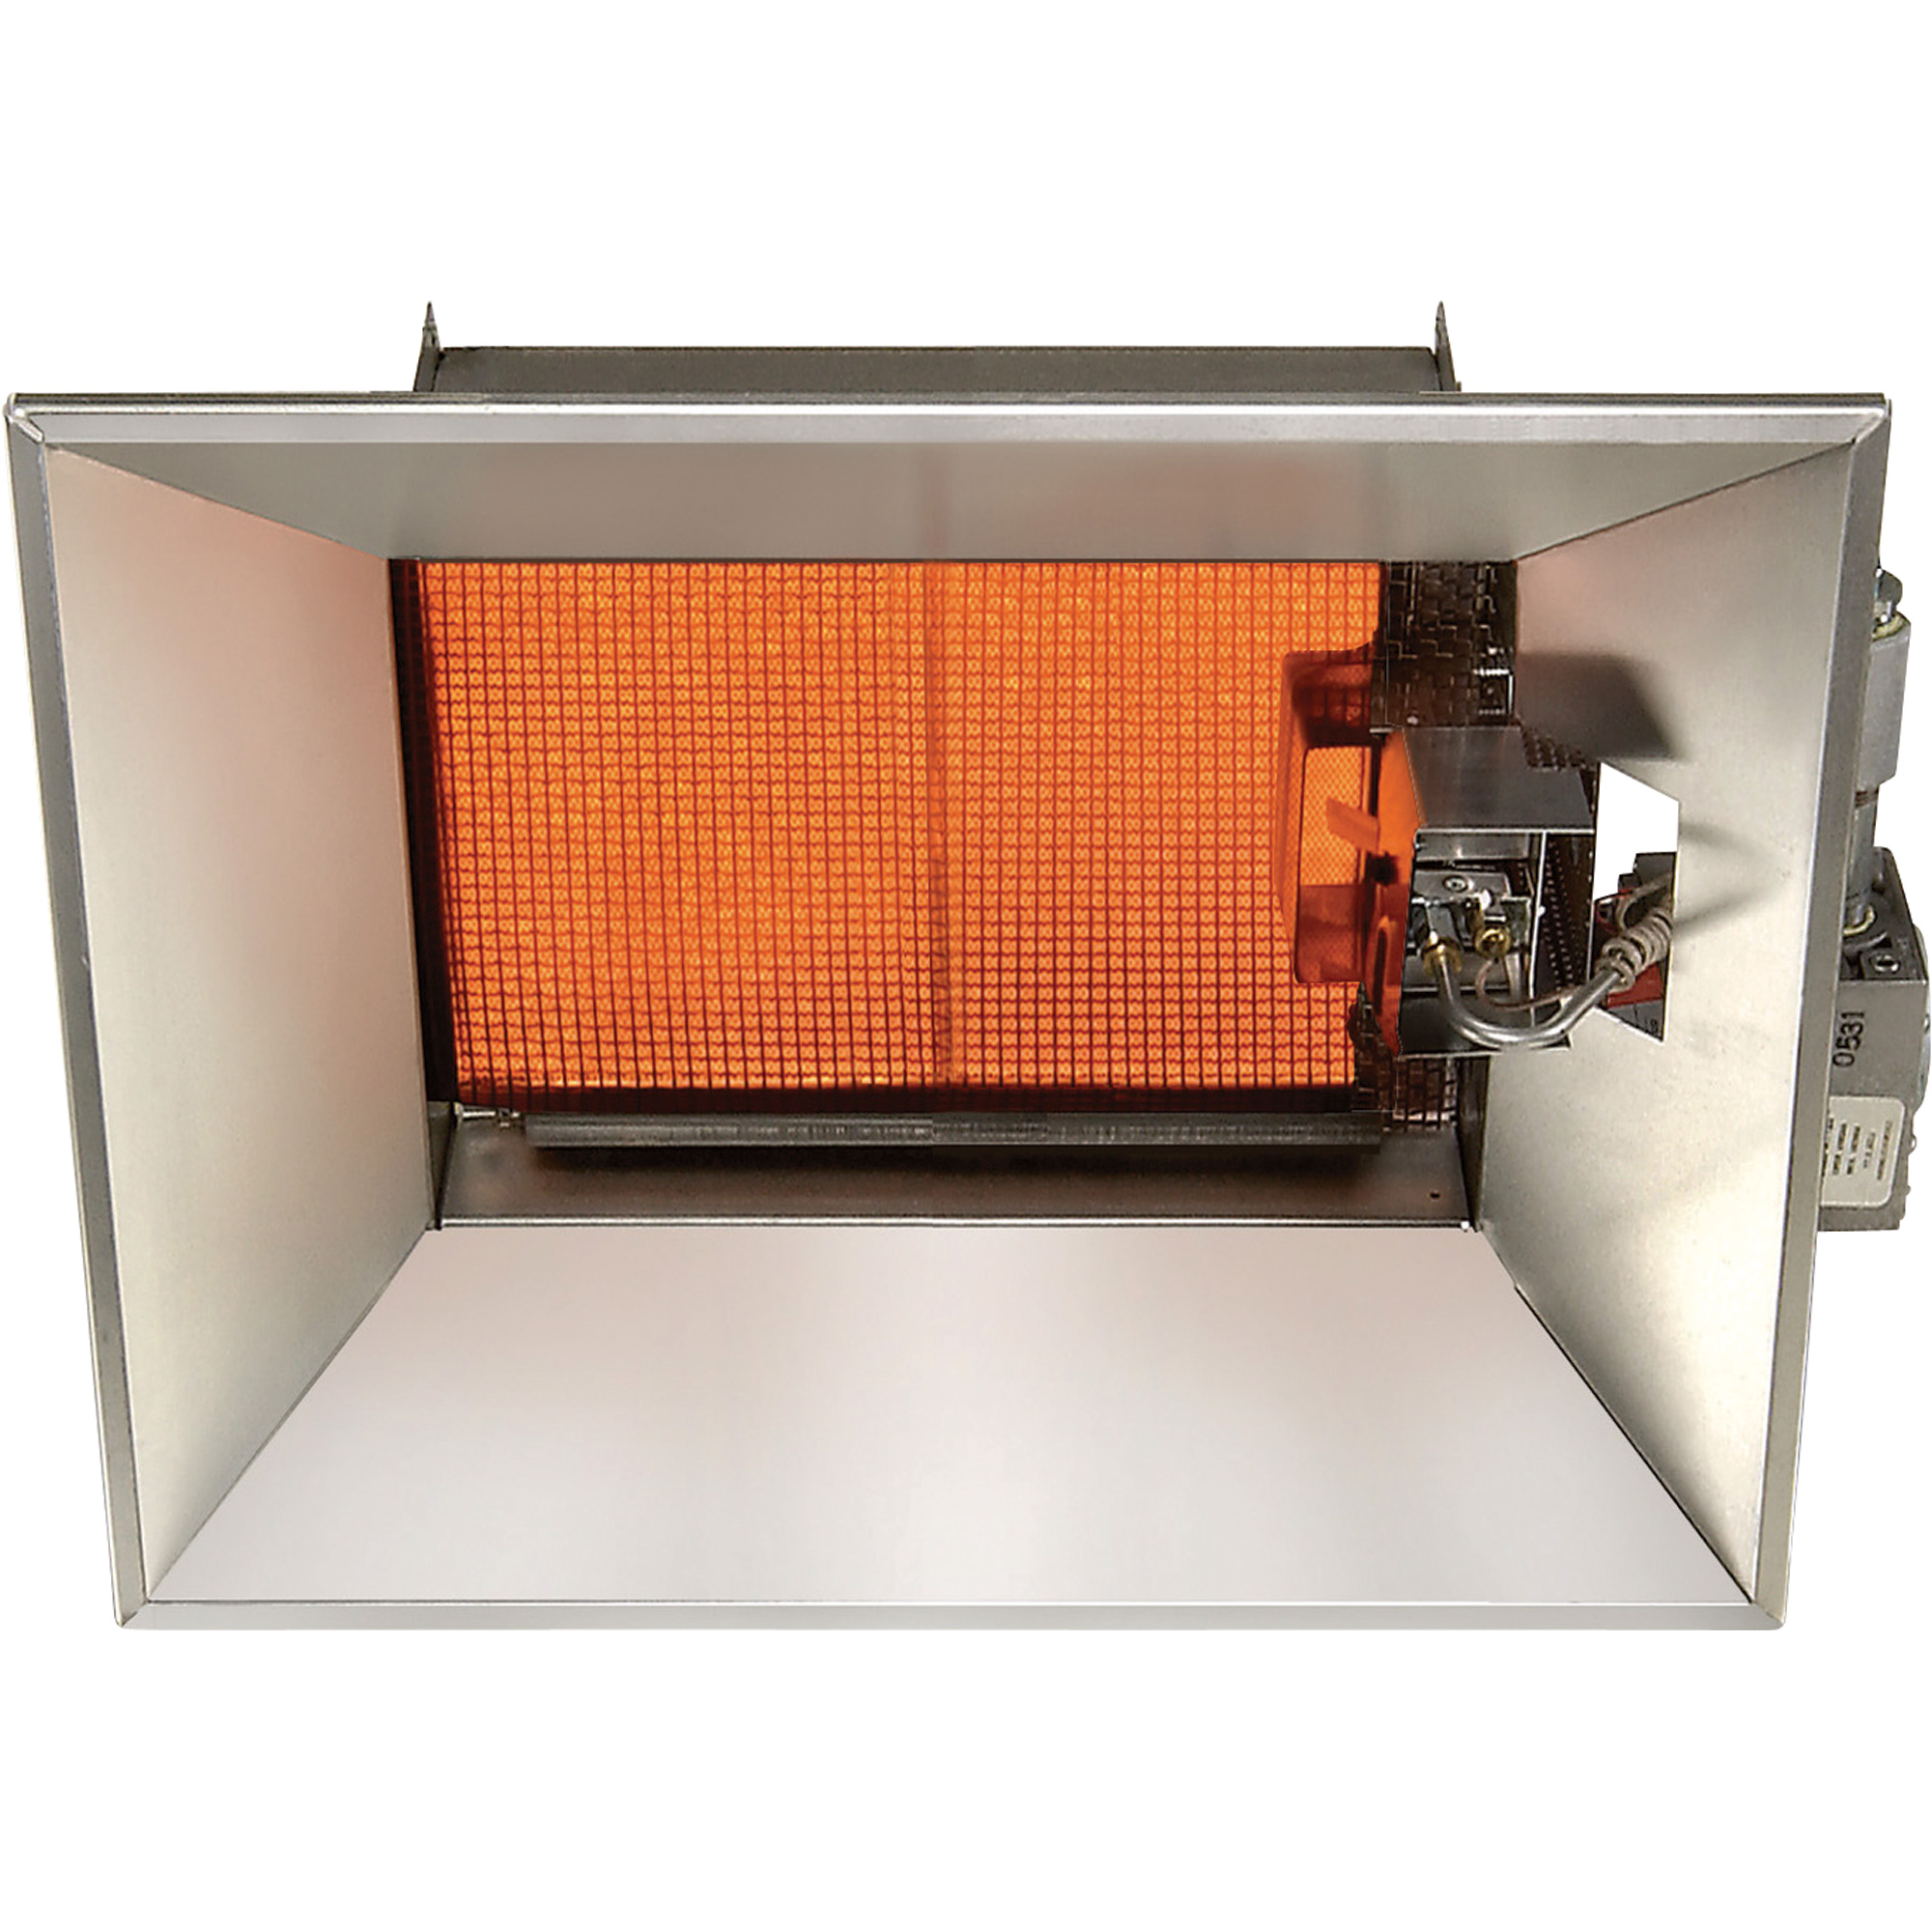 Sunstar Heating Products Infrared Ceramic Heater Lp